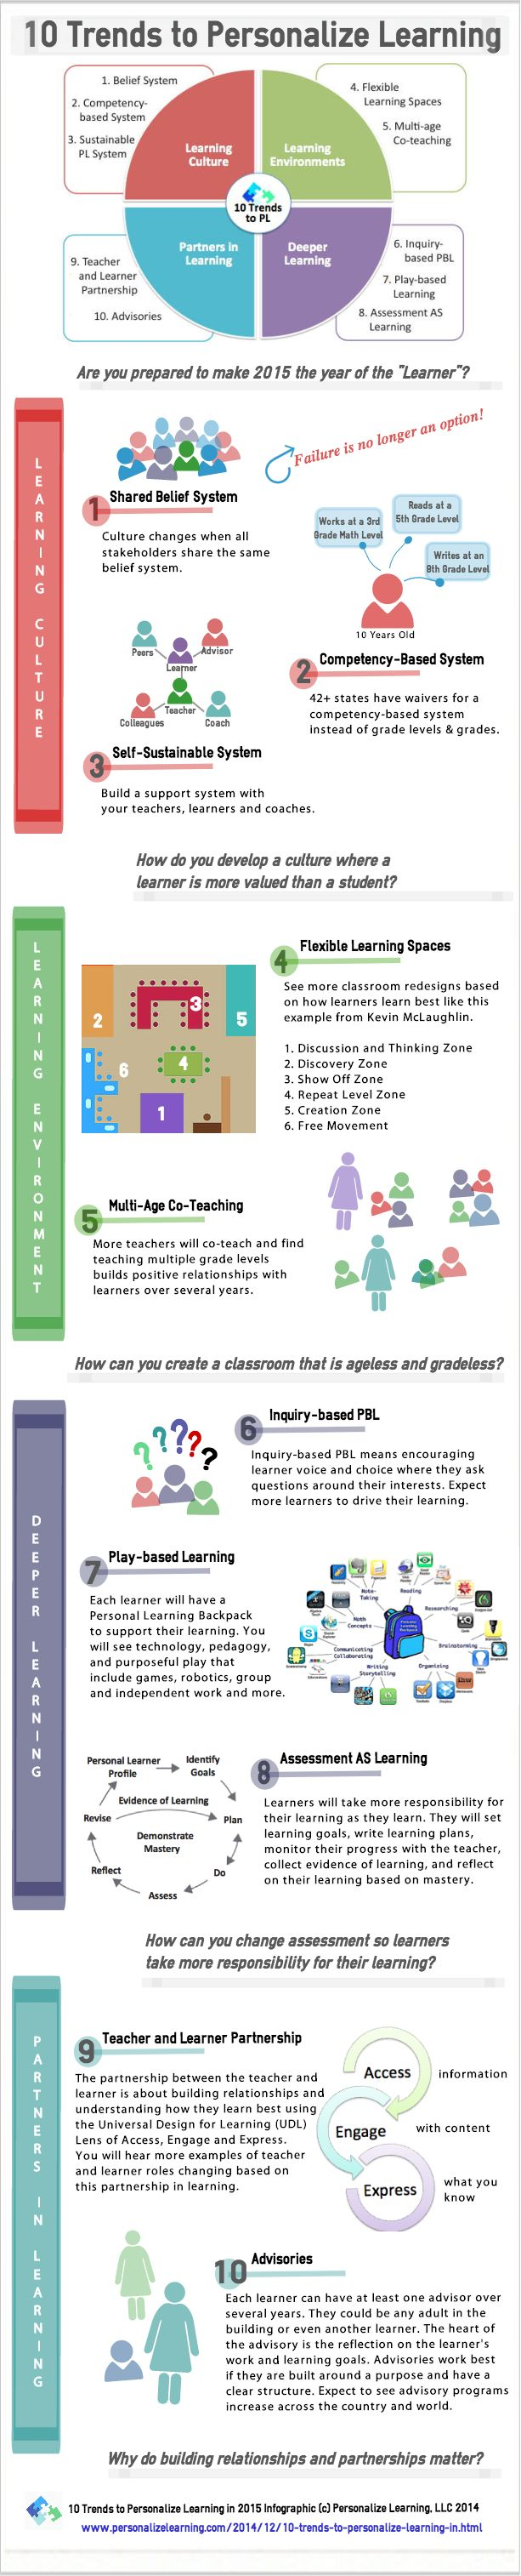 Infographic: 10 Trends to Personalize Learning in 2015 - See more at: http://www.personalizelearning.com/2015/01/infographic-10-trends-to-personalize.html#sthash.u5UQVmxM.dpuf